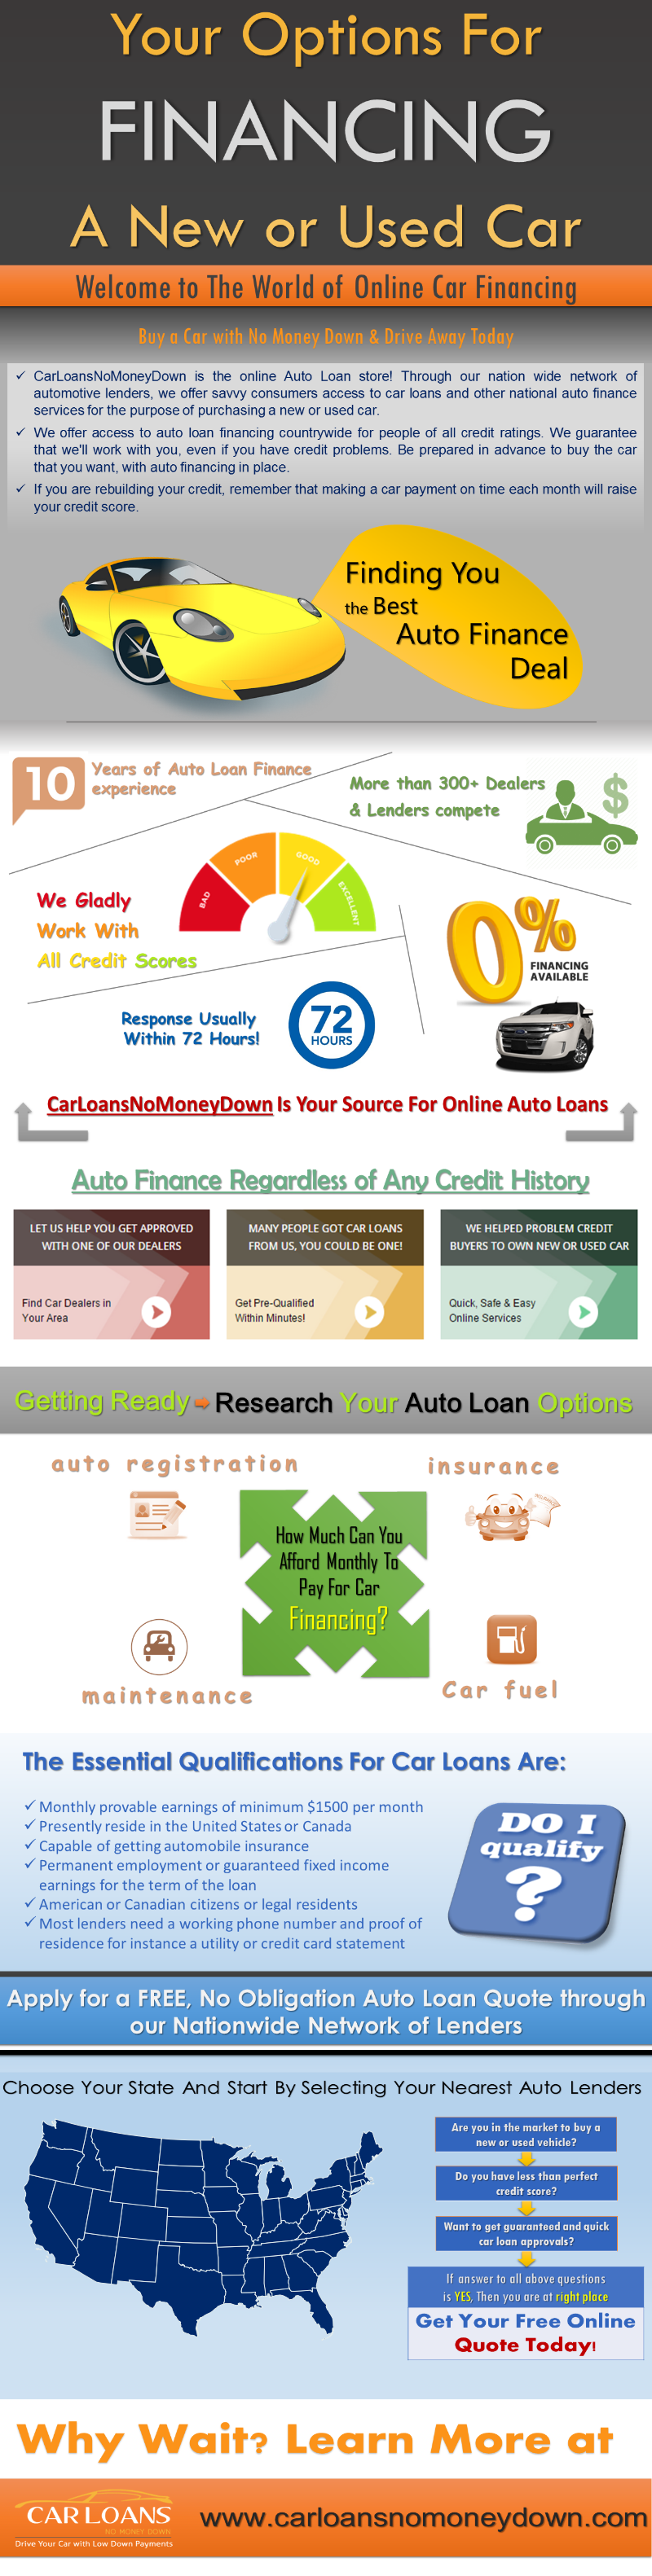 in fact such auto loans offer opportunity of improving credit score and also if borrower manages to make timely payments on his car loan after ting